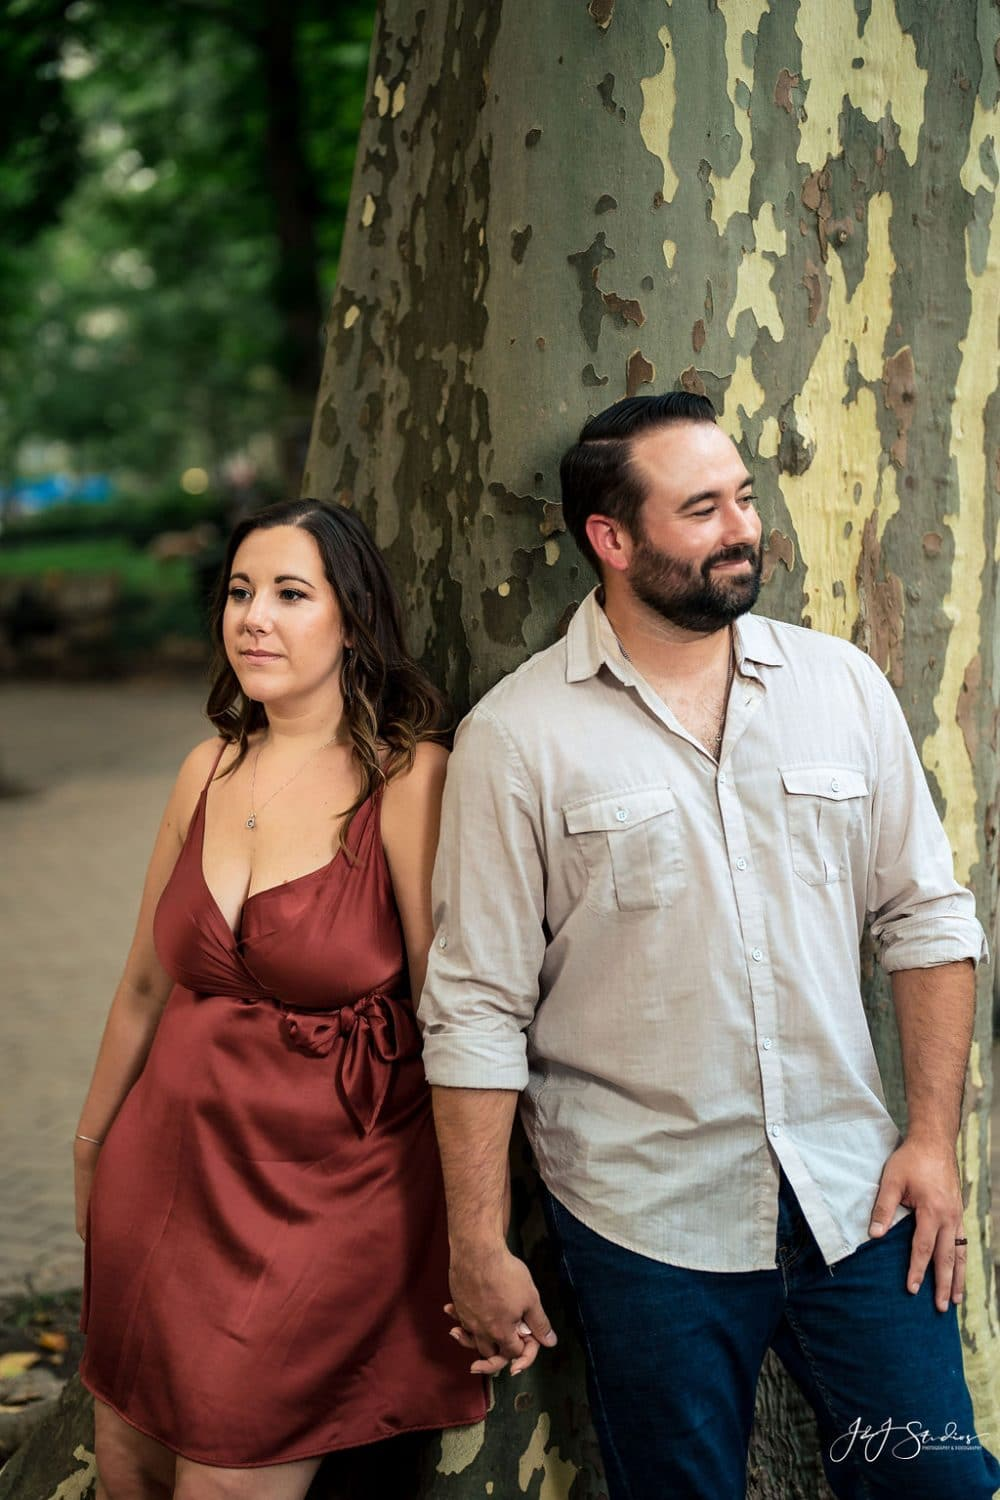 Sara and James against tree bark in the park Rittenhouse Square and Addison Street Engagement Shot By John Ryan